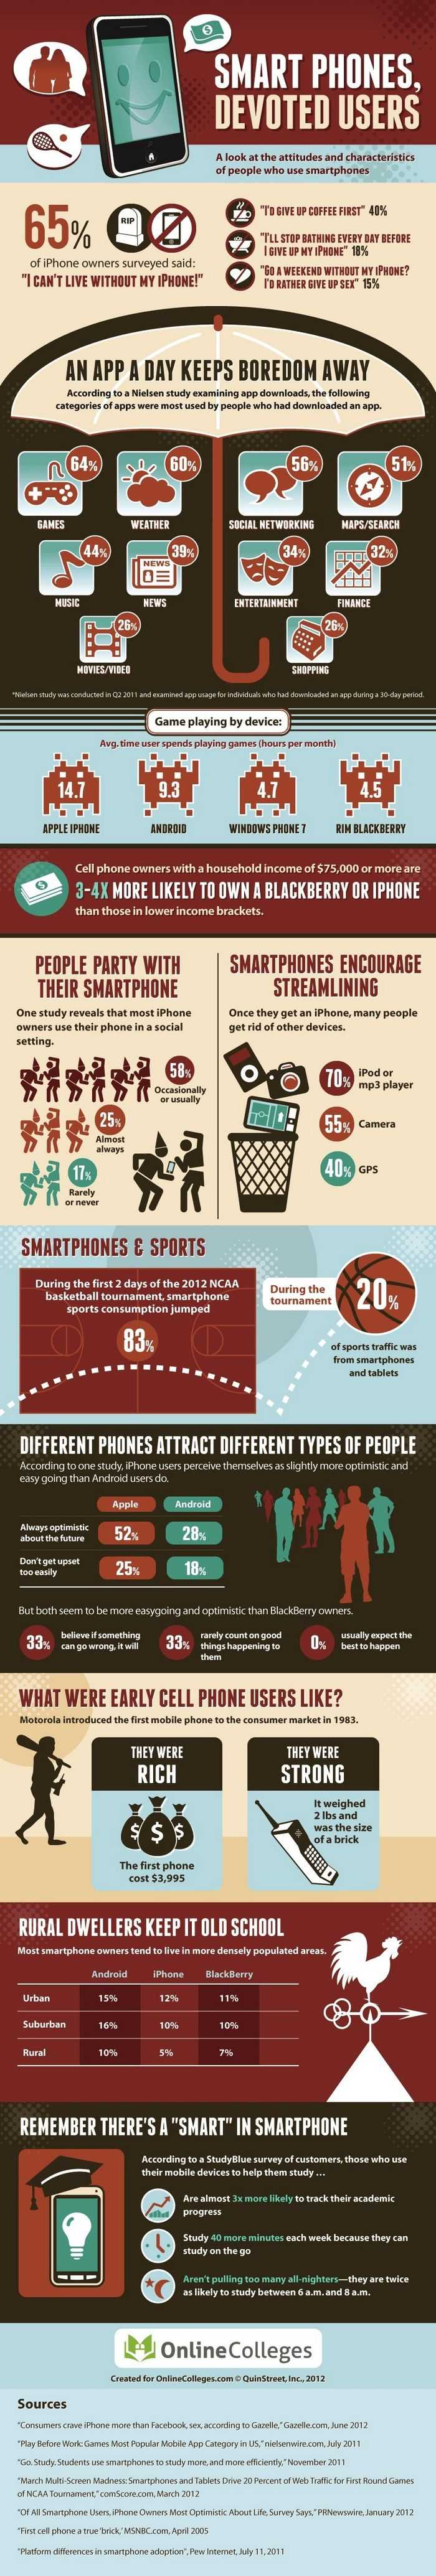 Are You Addicted to Your Smartphone? [INFOGRAPHIC]